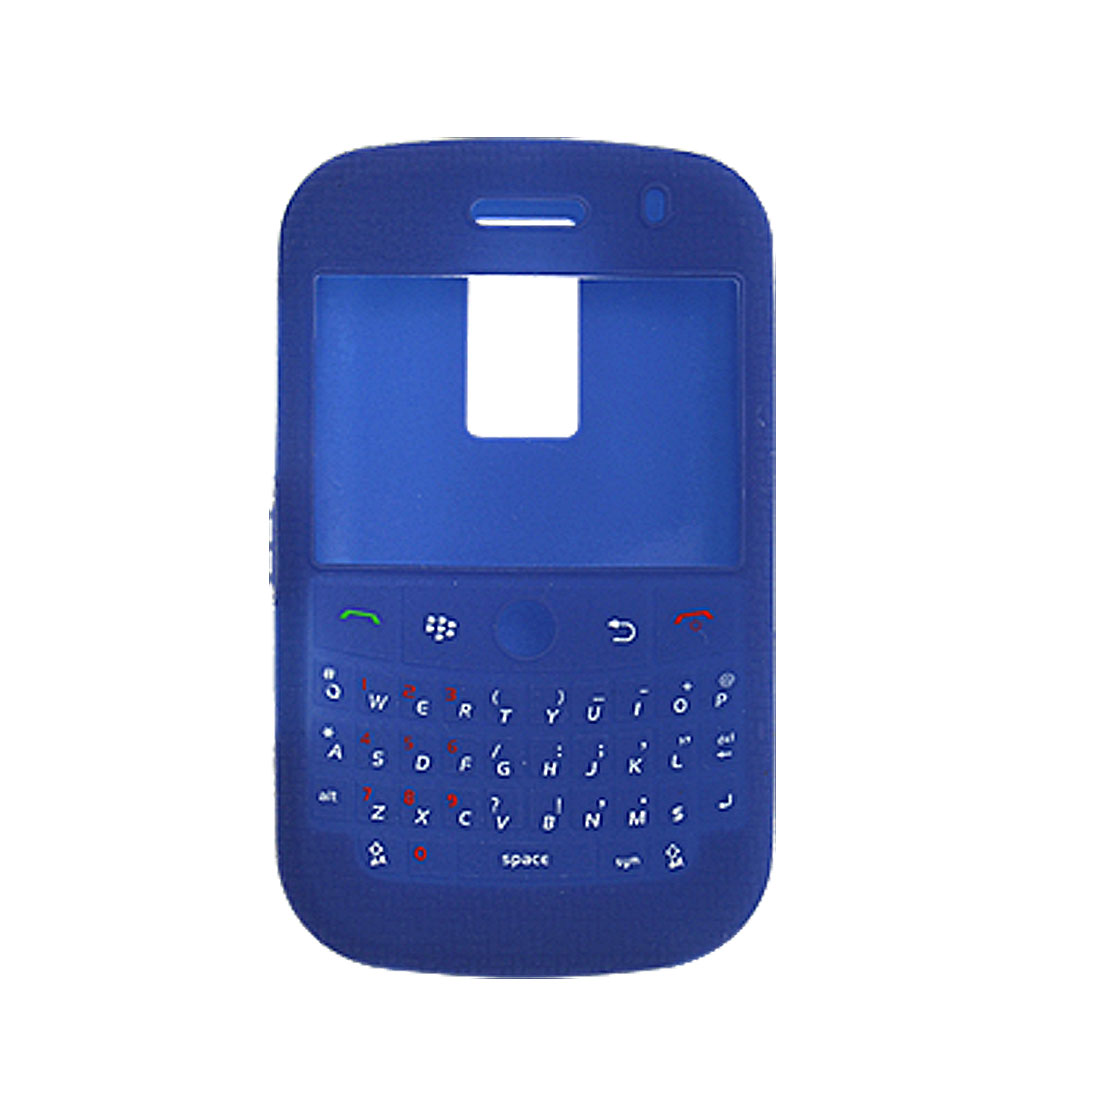 Nonsilp Silicone Skin Protective Case for Blackberry 9000